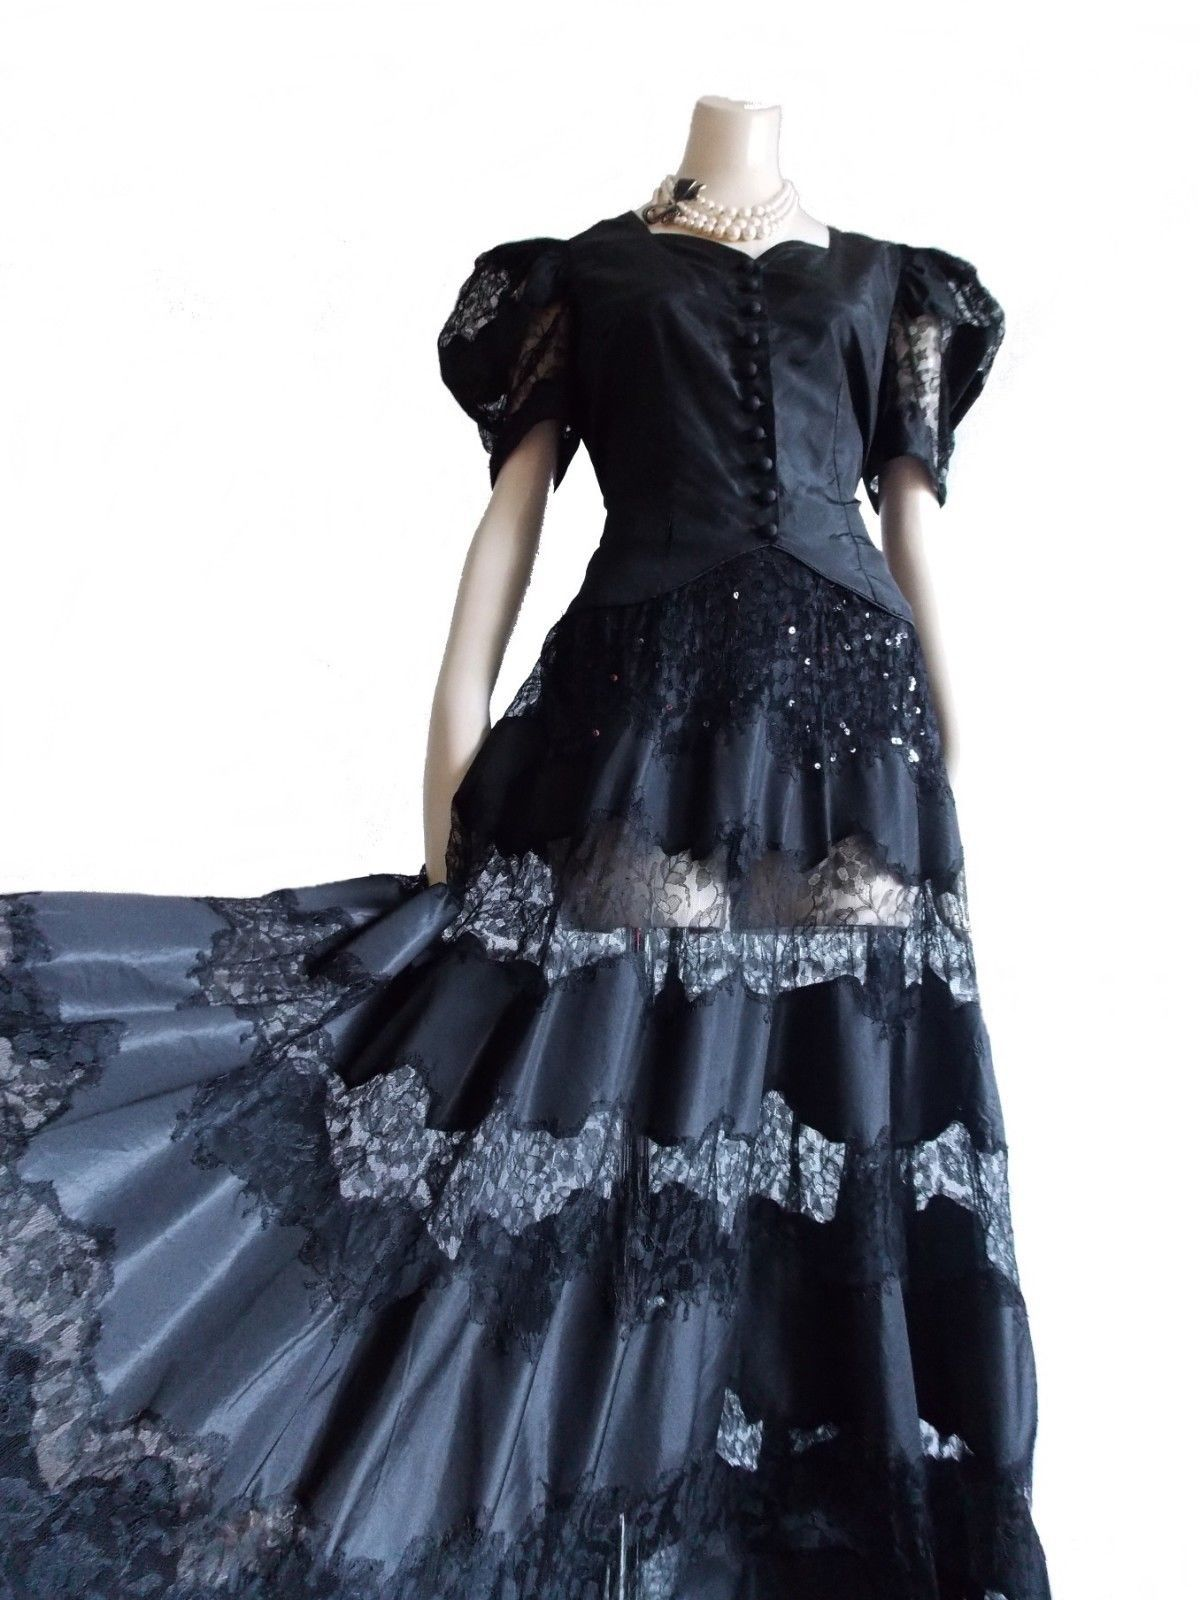 1940s Hollywood Evening Gowns: 1930s 40s Black Sheer Lace Taffeta Evening Dress / 1940s